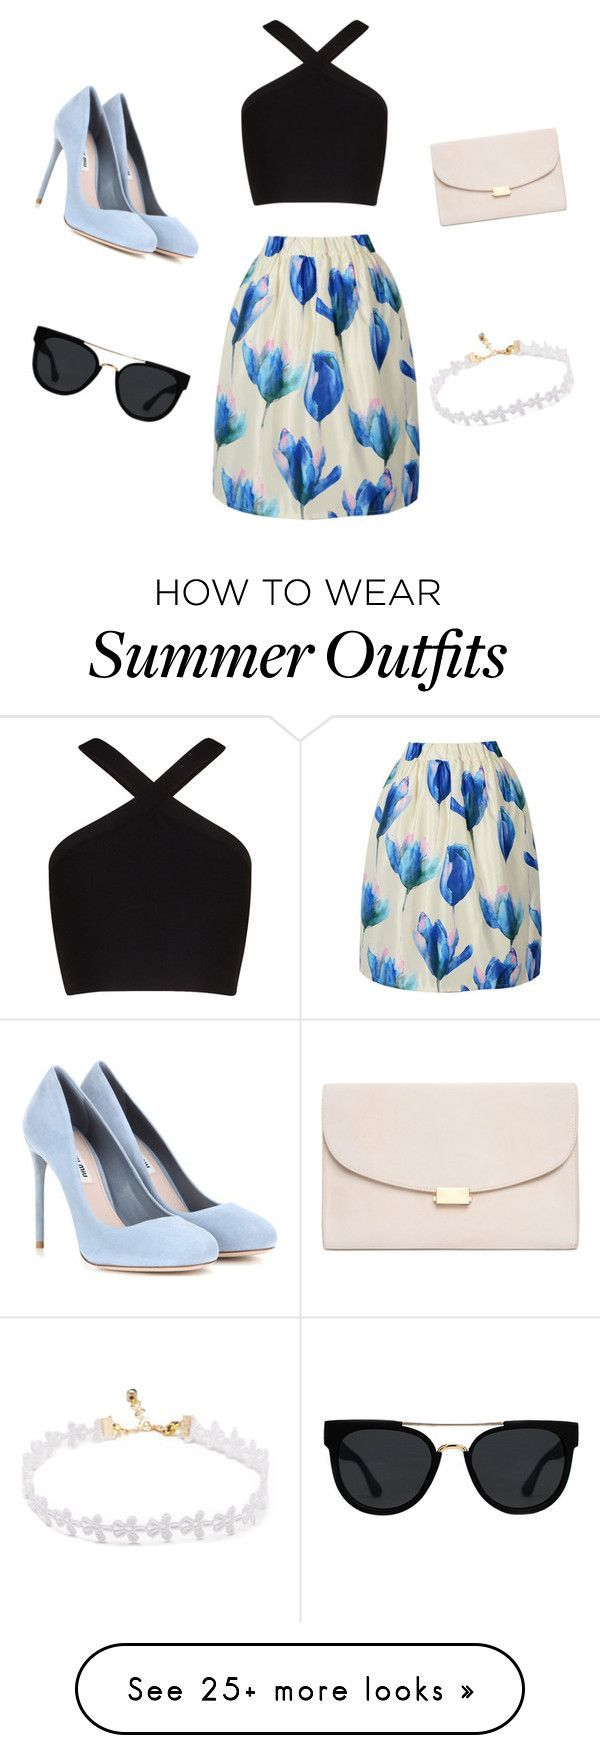 """Summer Outfits : """"Floral outfit"""" by jordan-vartan on Polyvore featuring BCBGMAXAZRIA M"""